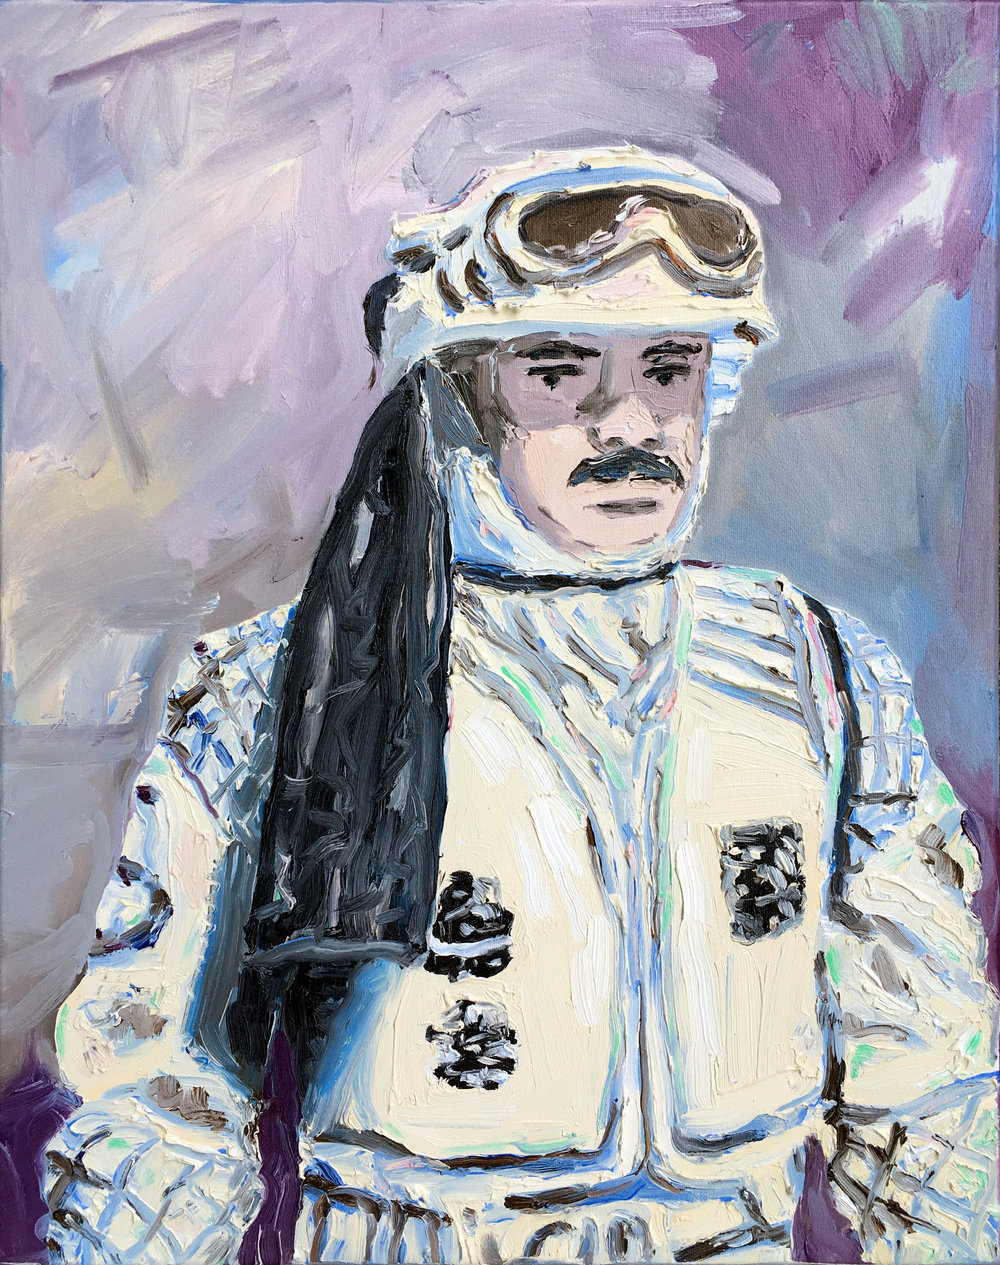 Untitled (1980 Hoth Rebel Commander)